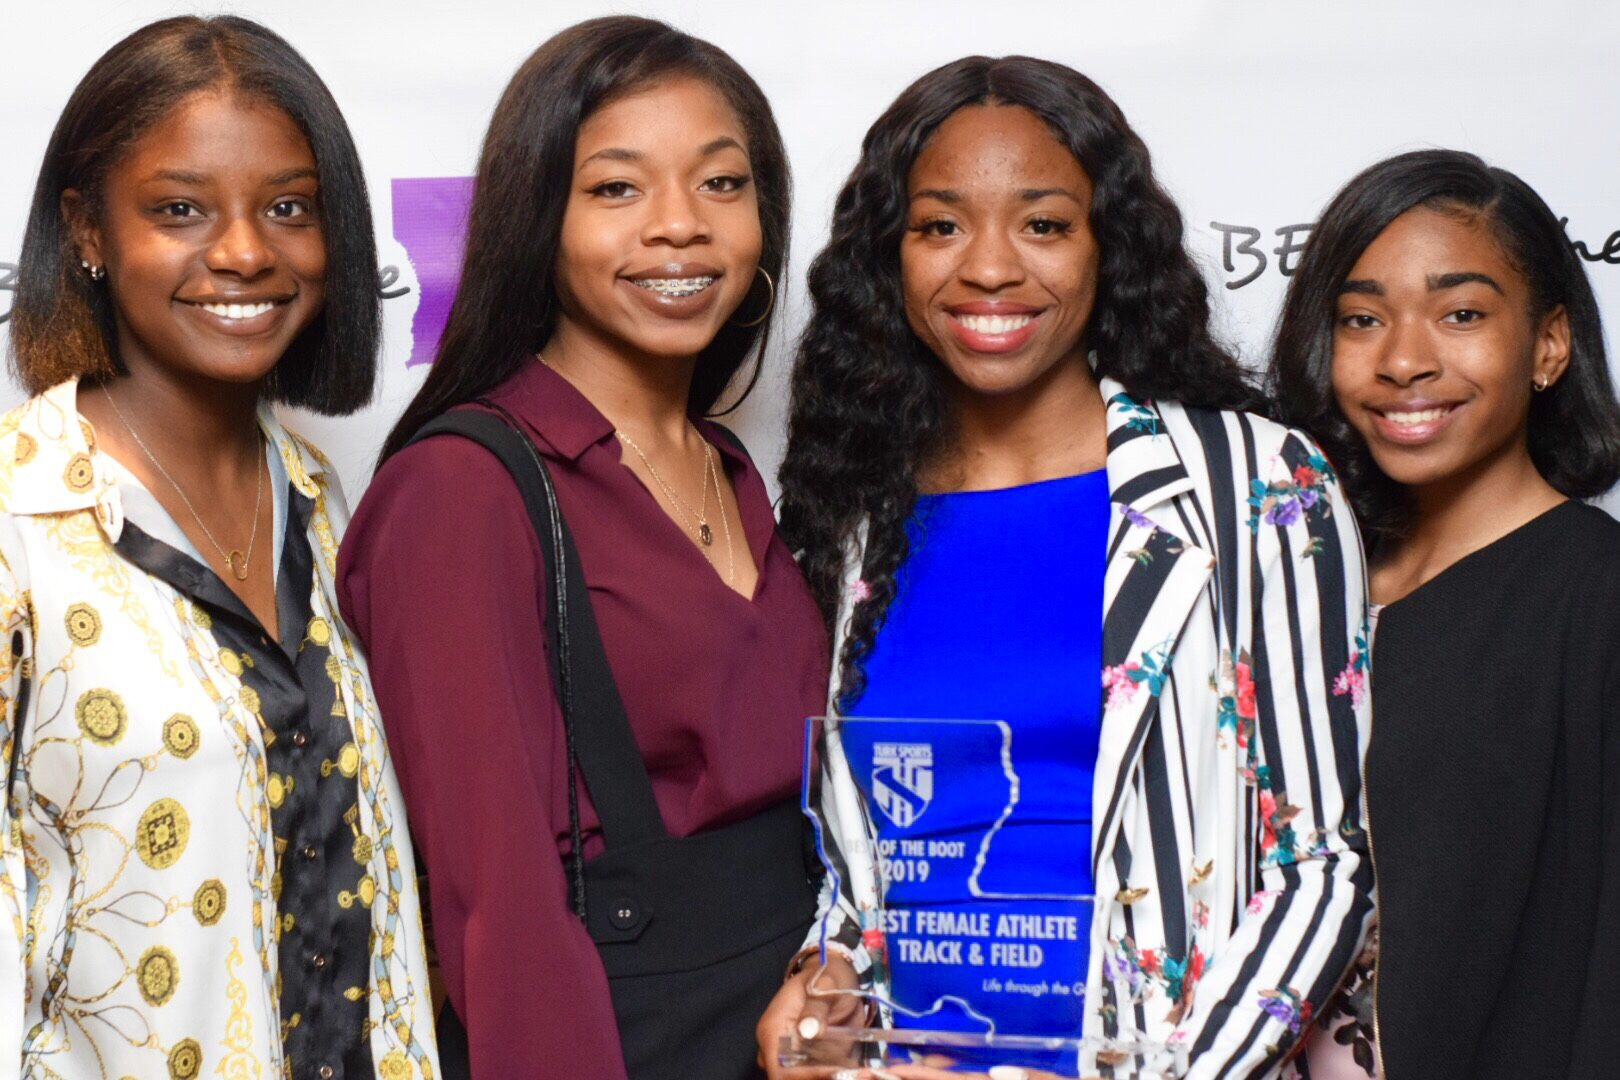 Best Female Athlete; Track & Field Alia Armstrong with SKDP teammates